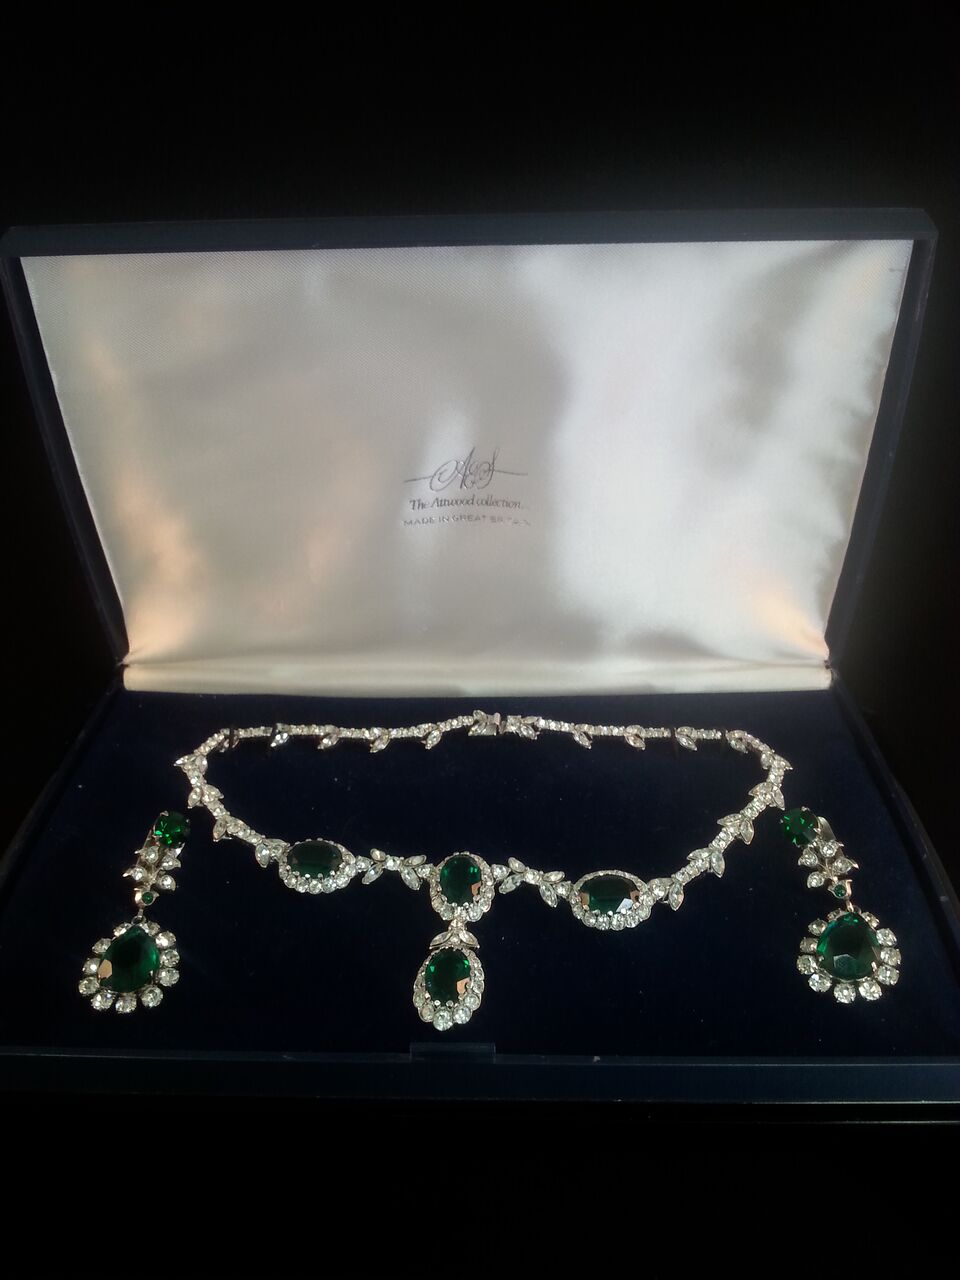 Lot 151 Superb Quality Vintage Attwood Sawyer Boxed Jewellery Set A High Value